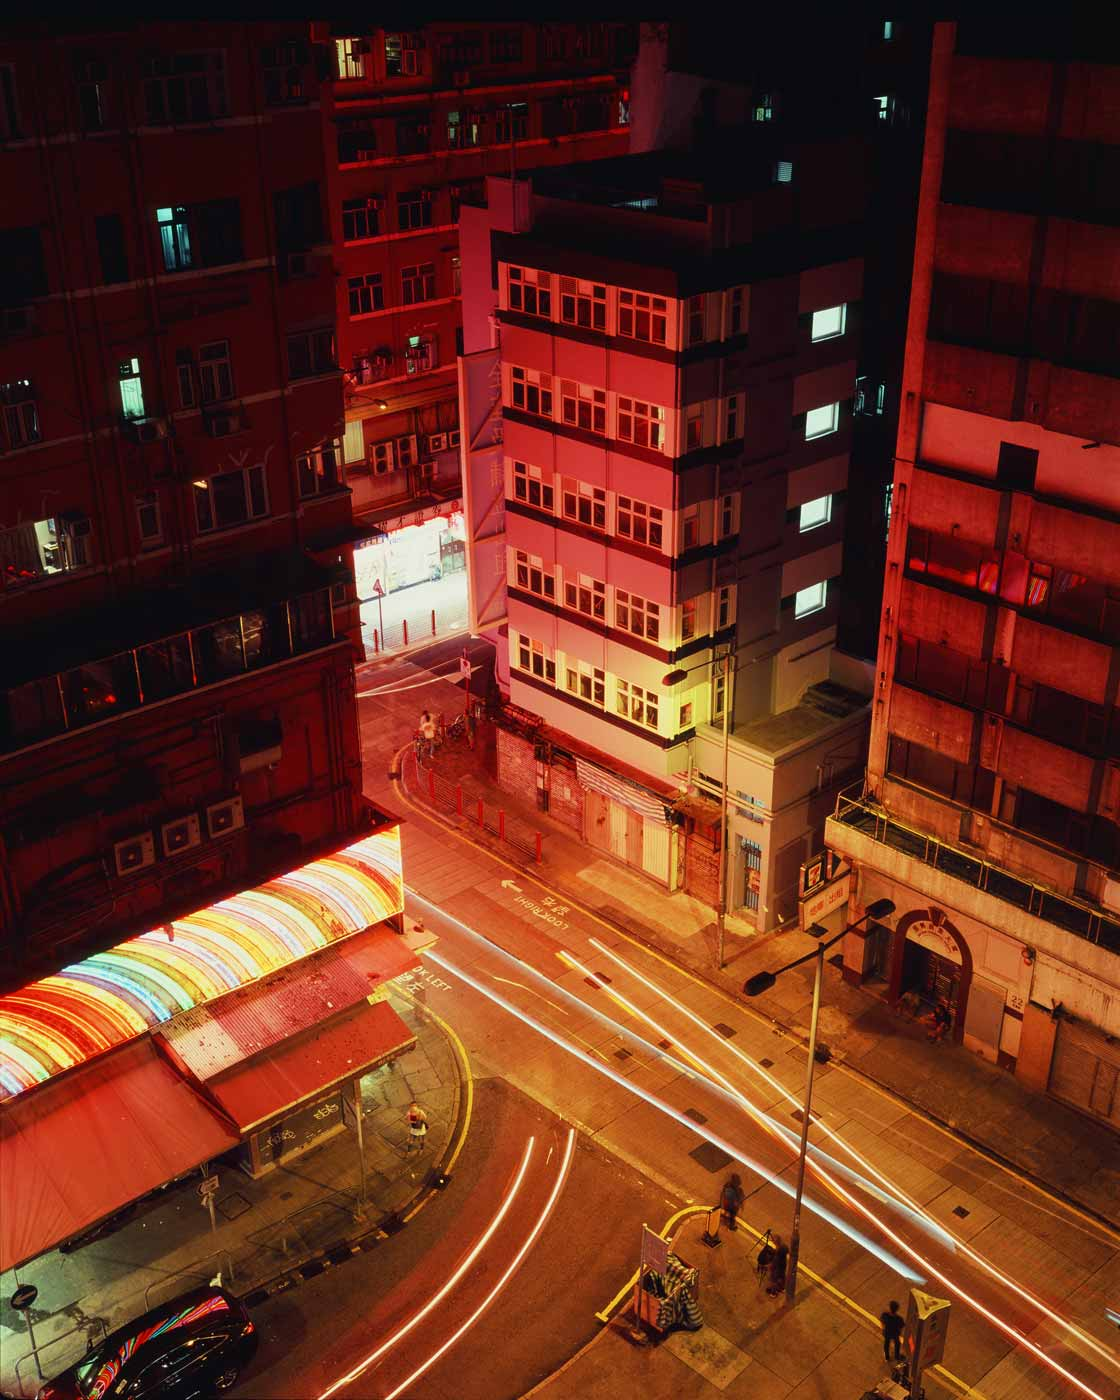 night-shooting-long-exposure-120-6x7-film-medium-format-makina-67-670-plaubel-fuji-fujichrome-rvp-velvia-100-slide-e6-colour-reversal-temple-street-hong-kong-hk-light-rail-buildings-halo-movie